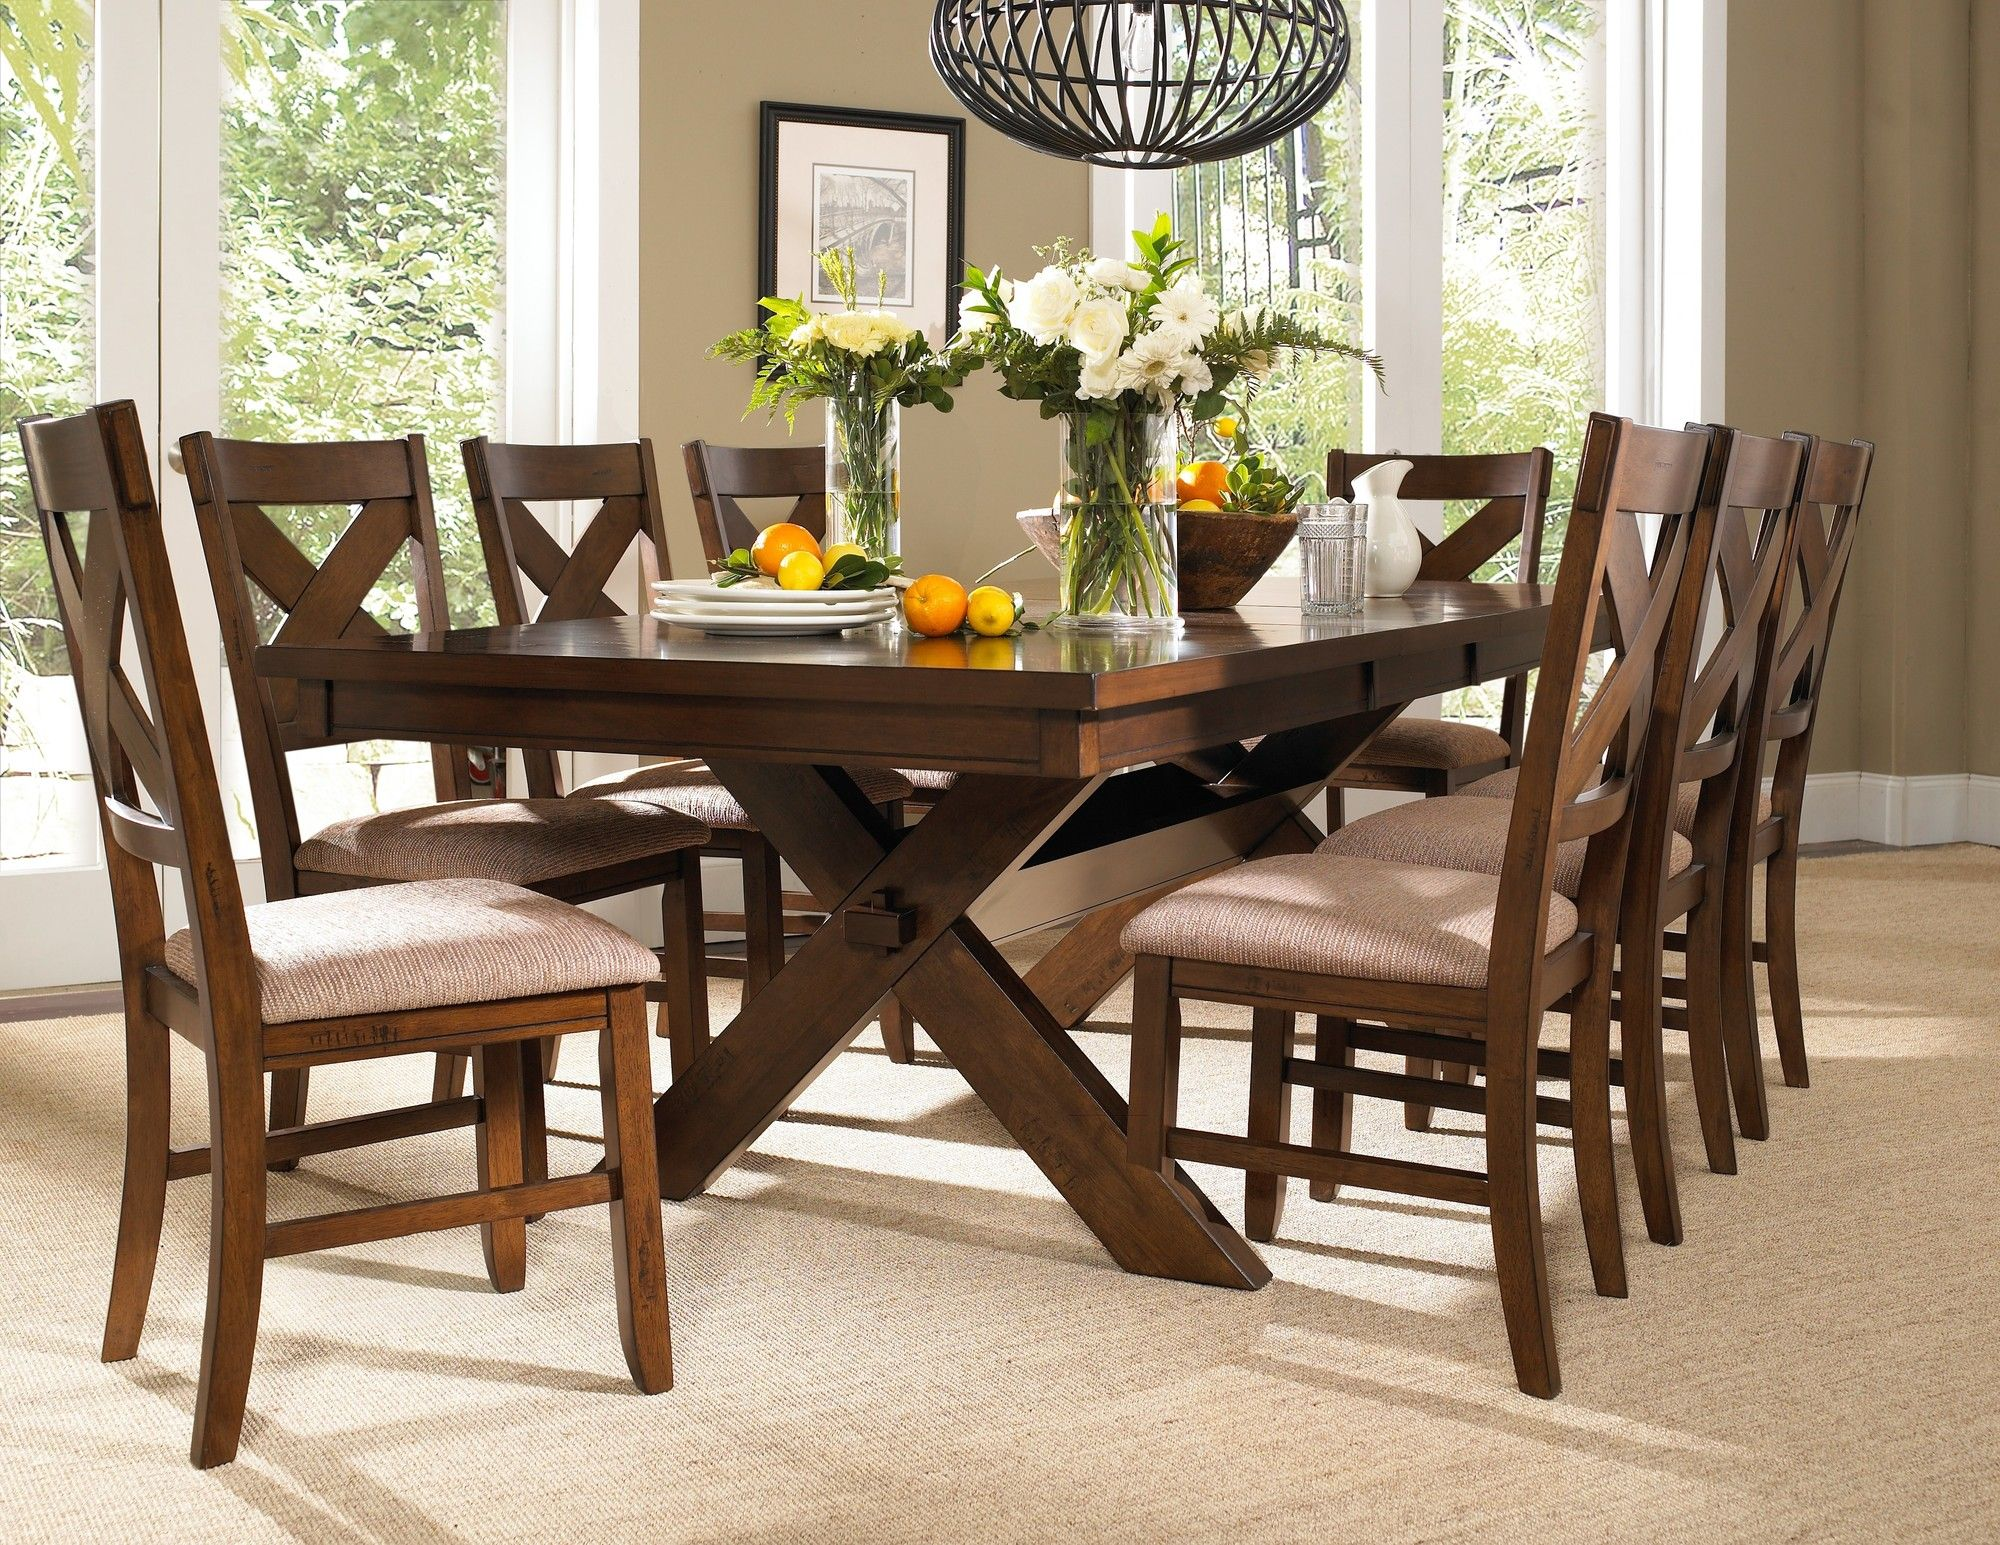 You'll Love The 9Piece Weir Dining Set At Joss & Main  With Awesome 8 Pc Dining Room Set Design Decoration